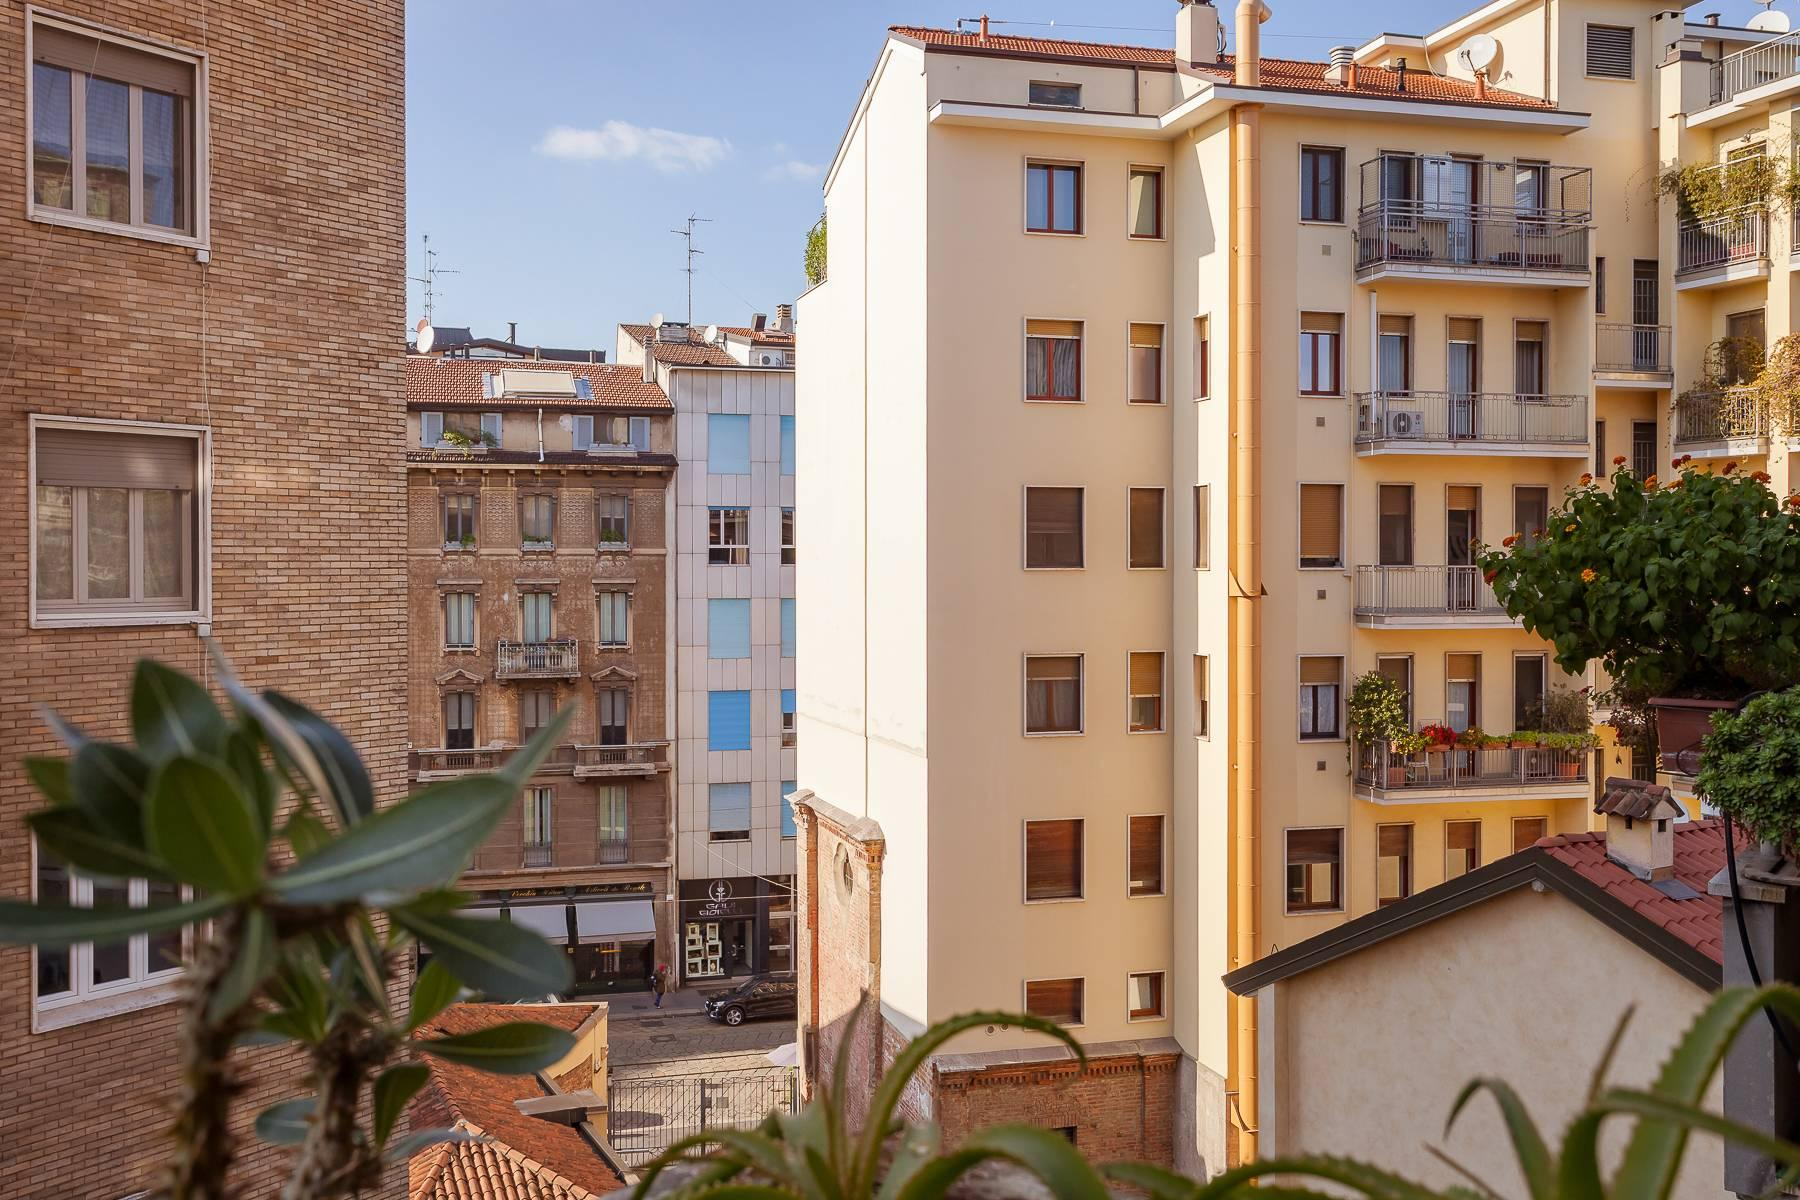 Bright, renovated two-bedroom apartment a stone's throw from the Duomo - 4